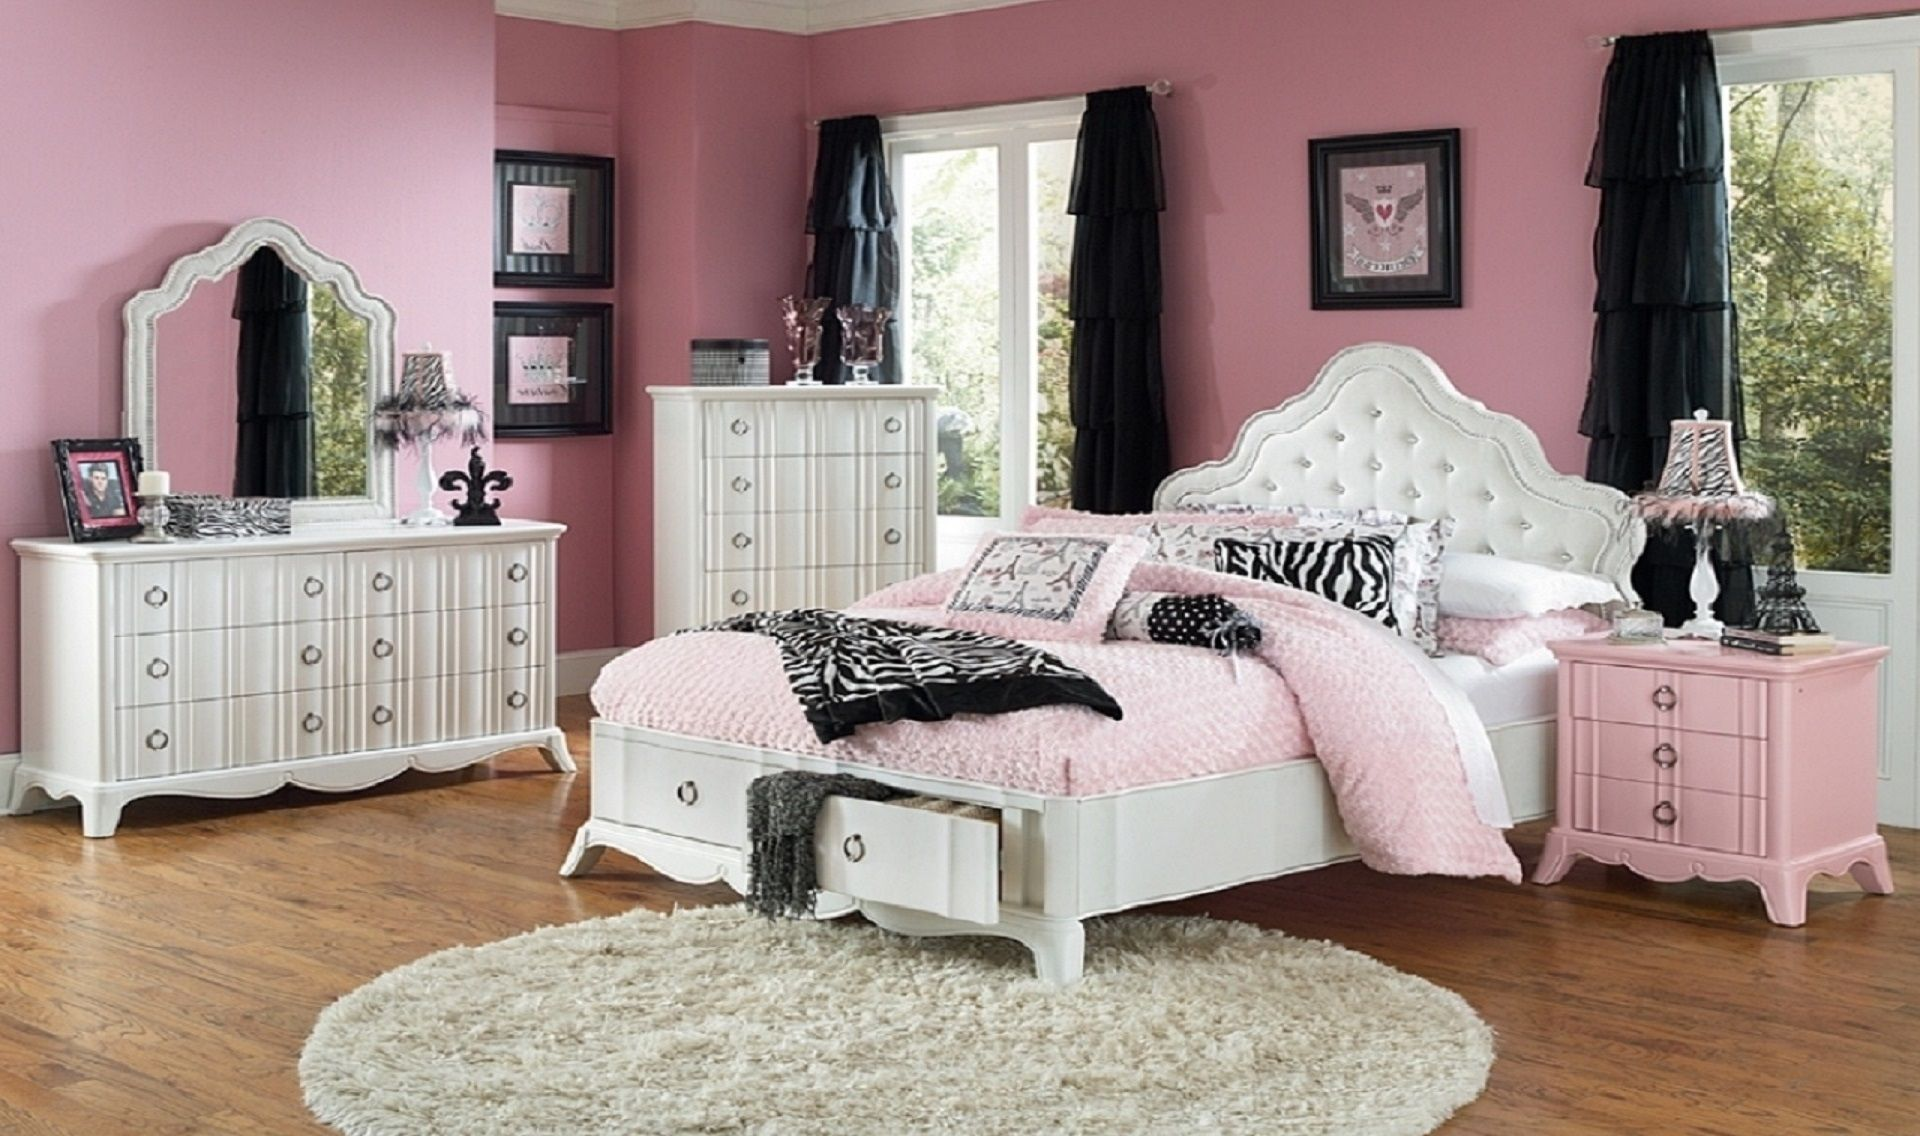 int. pink & black bedroom large #episodeinteractive #episode size